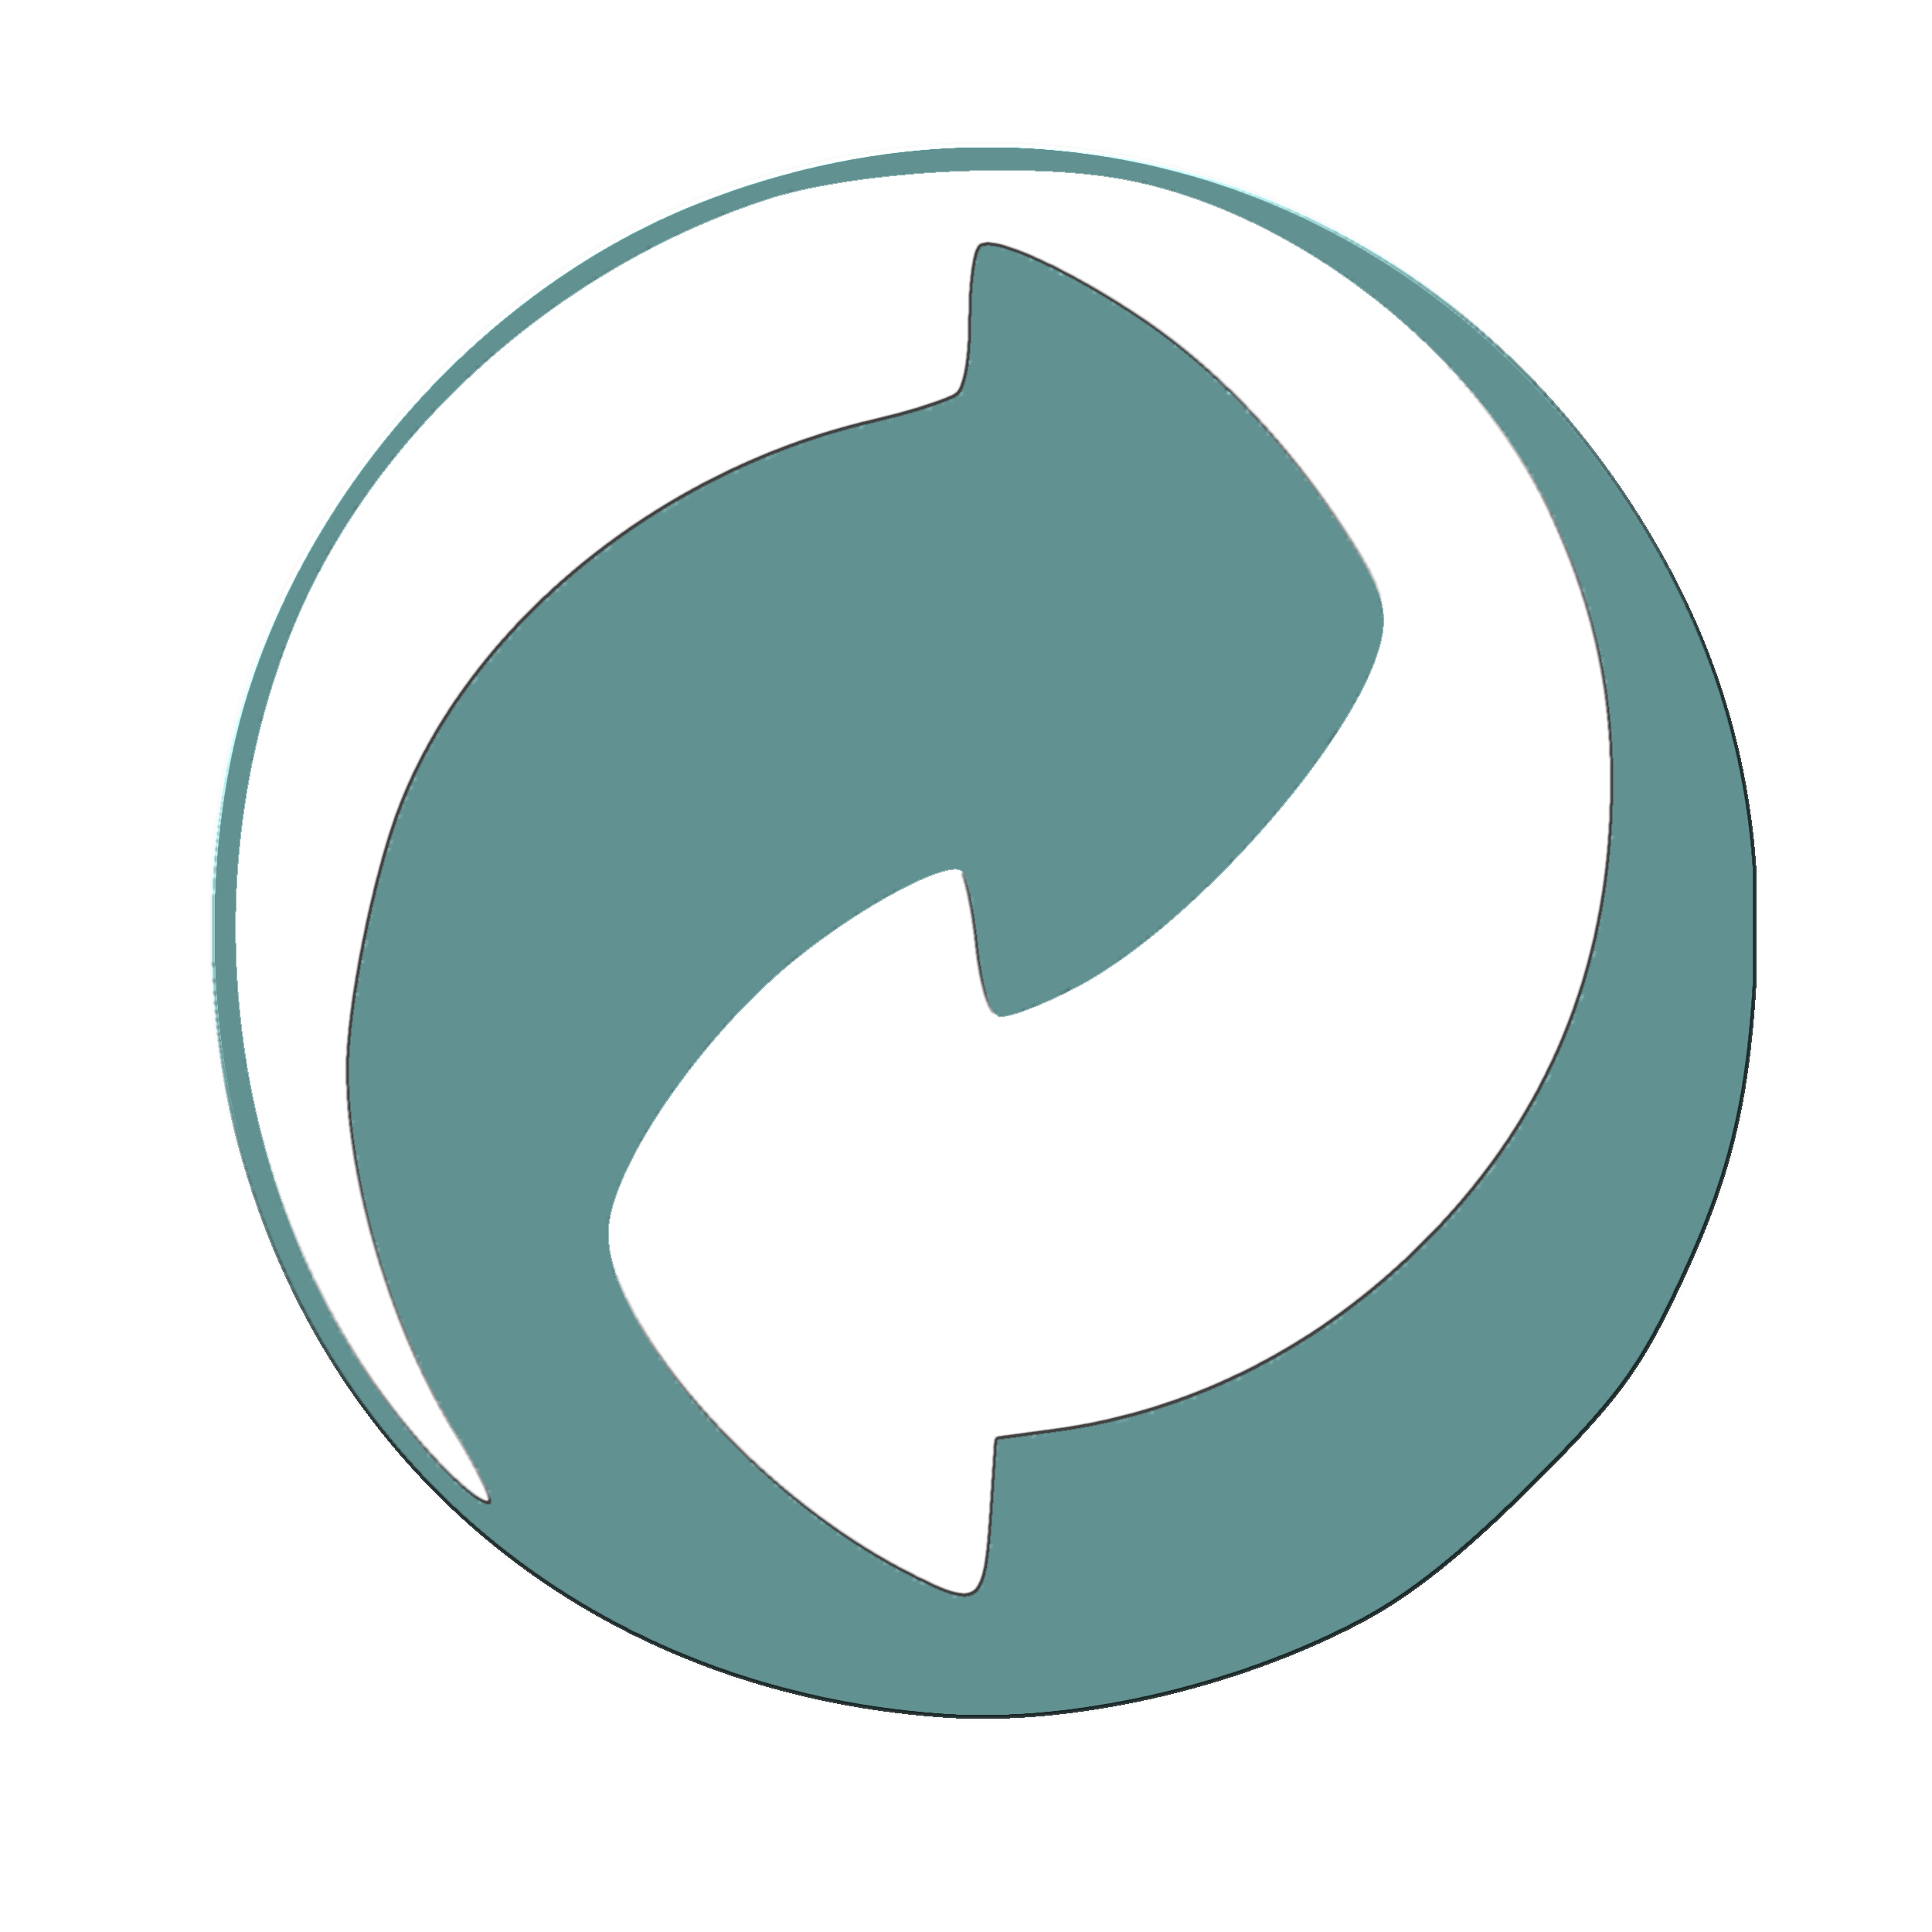 Recycle Symbol Recycling Reuse Icon Free Transparent Image HQ PNG Image